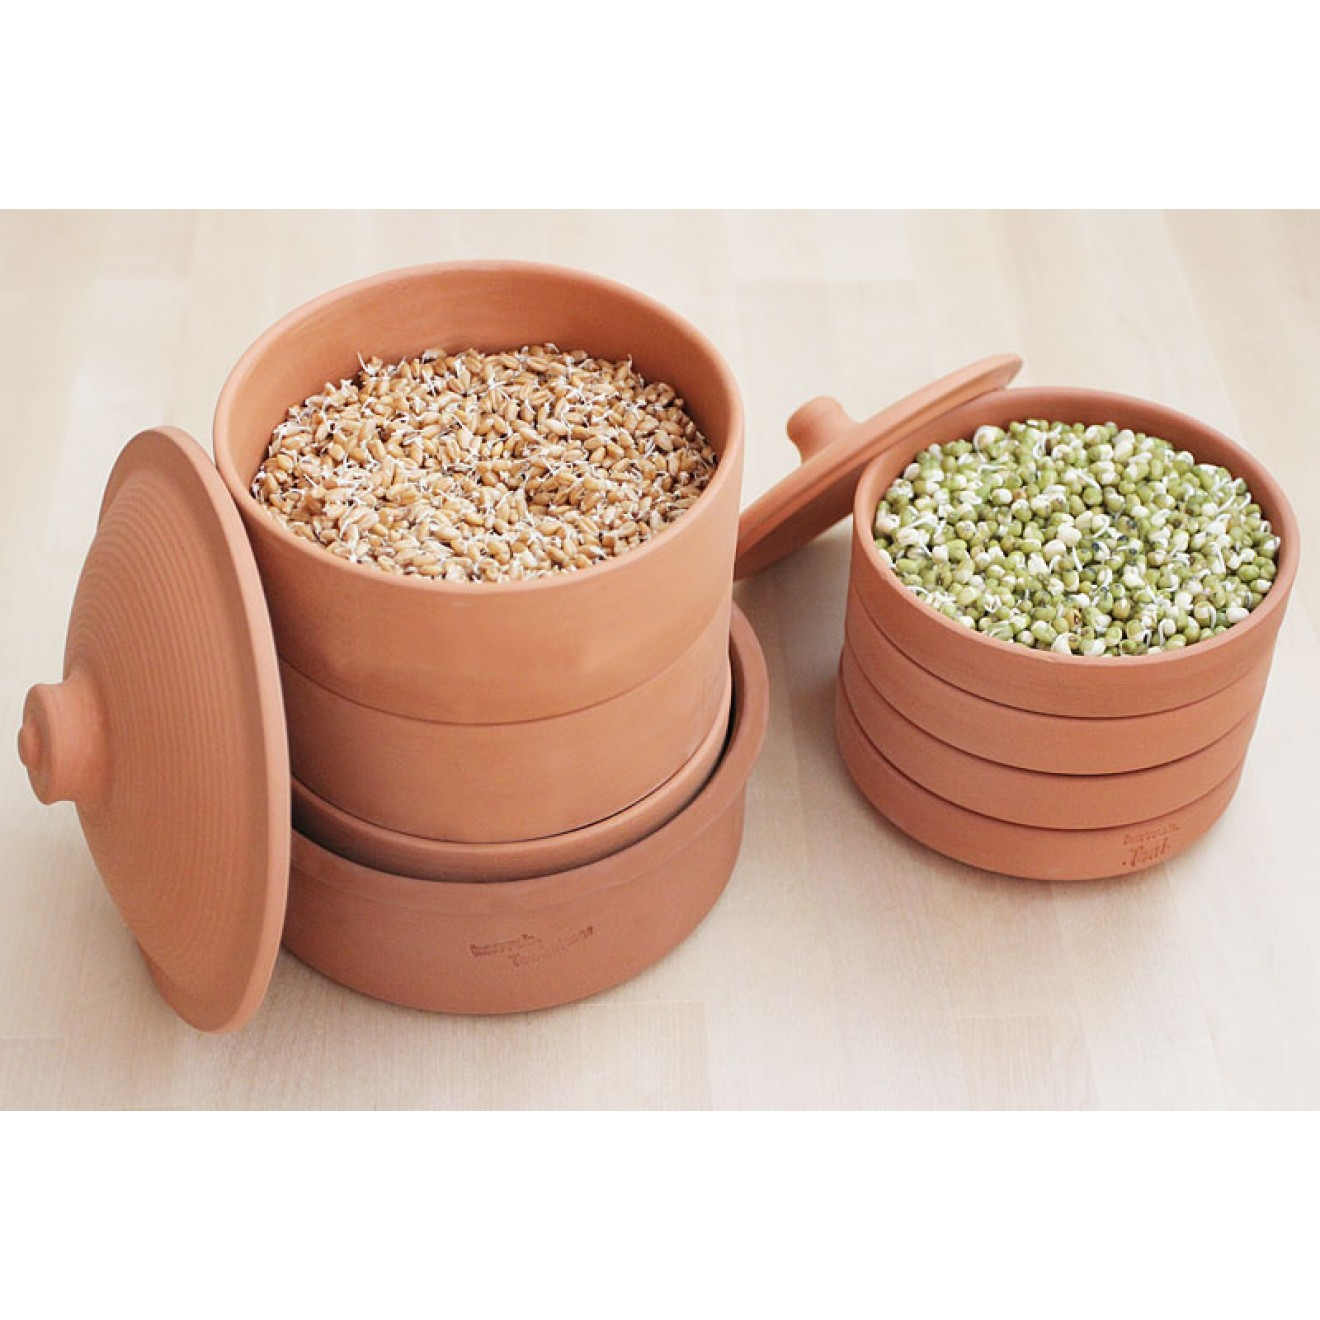 hawos Clay sprouting pot